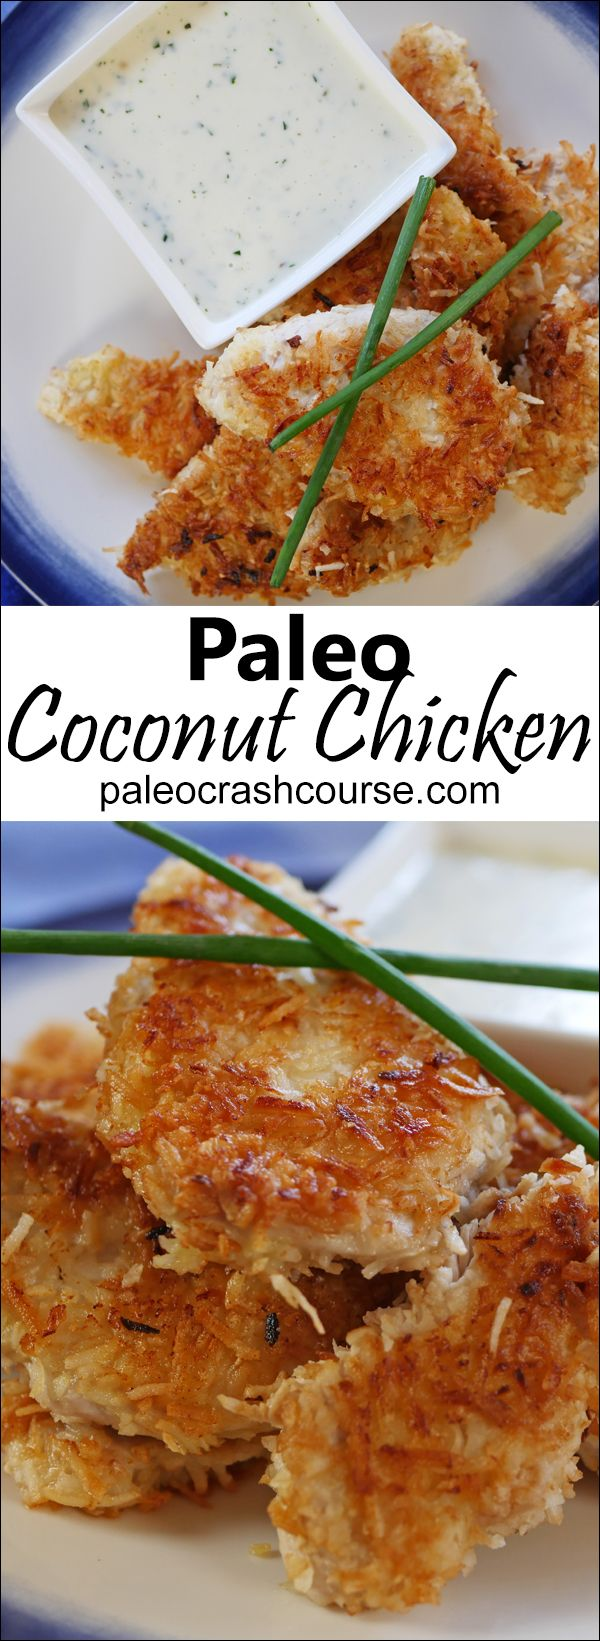 Delicious crunchy strips of coconut chicken that you can either fry or bake! Goes amazing with some paleo friendly ranch dressing or in a salad.                                                                                                                                                                                 More